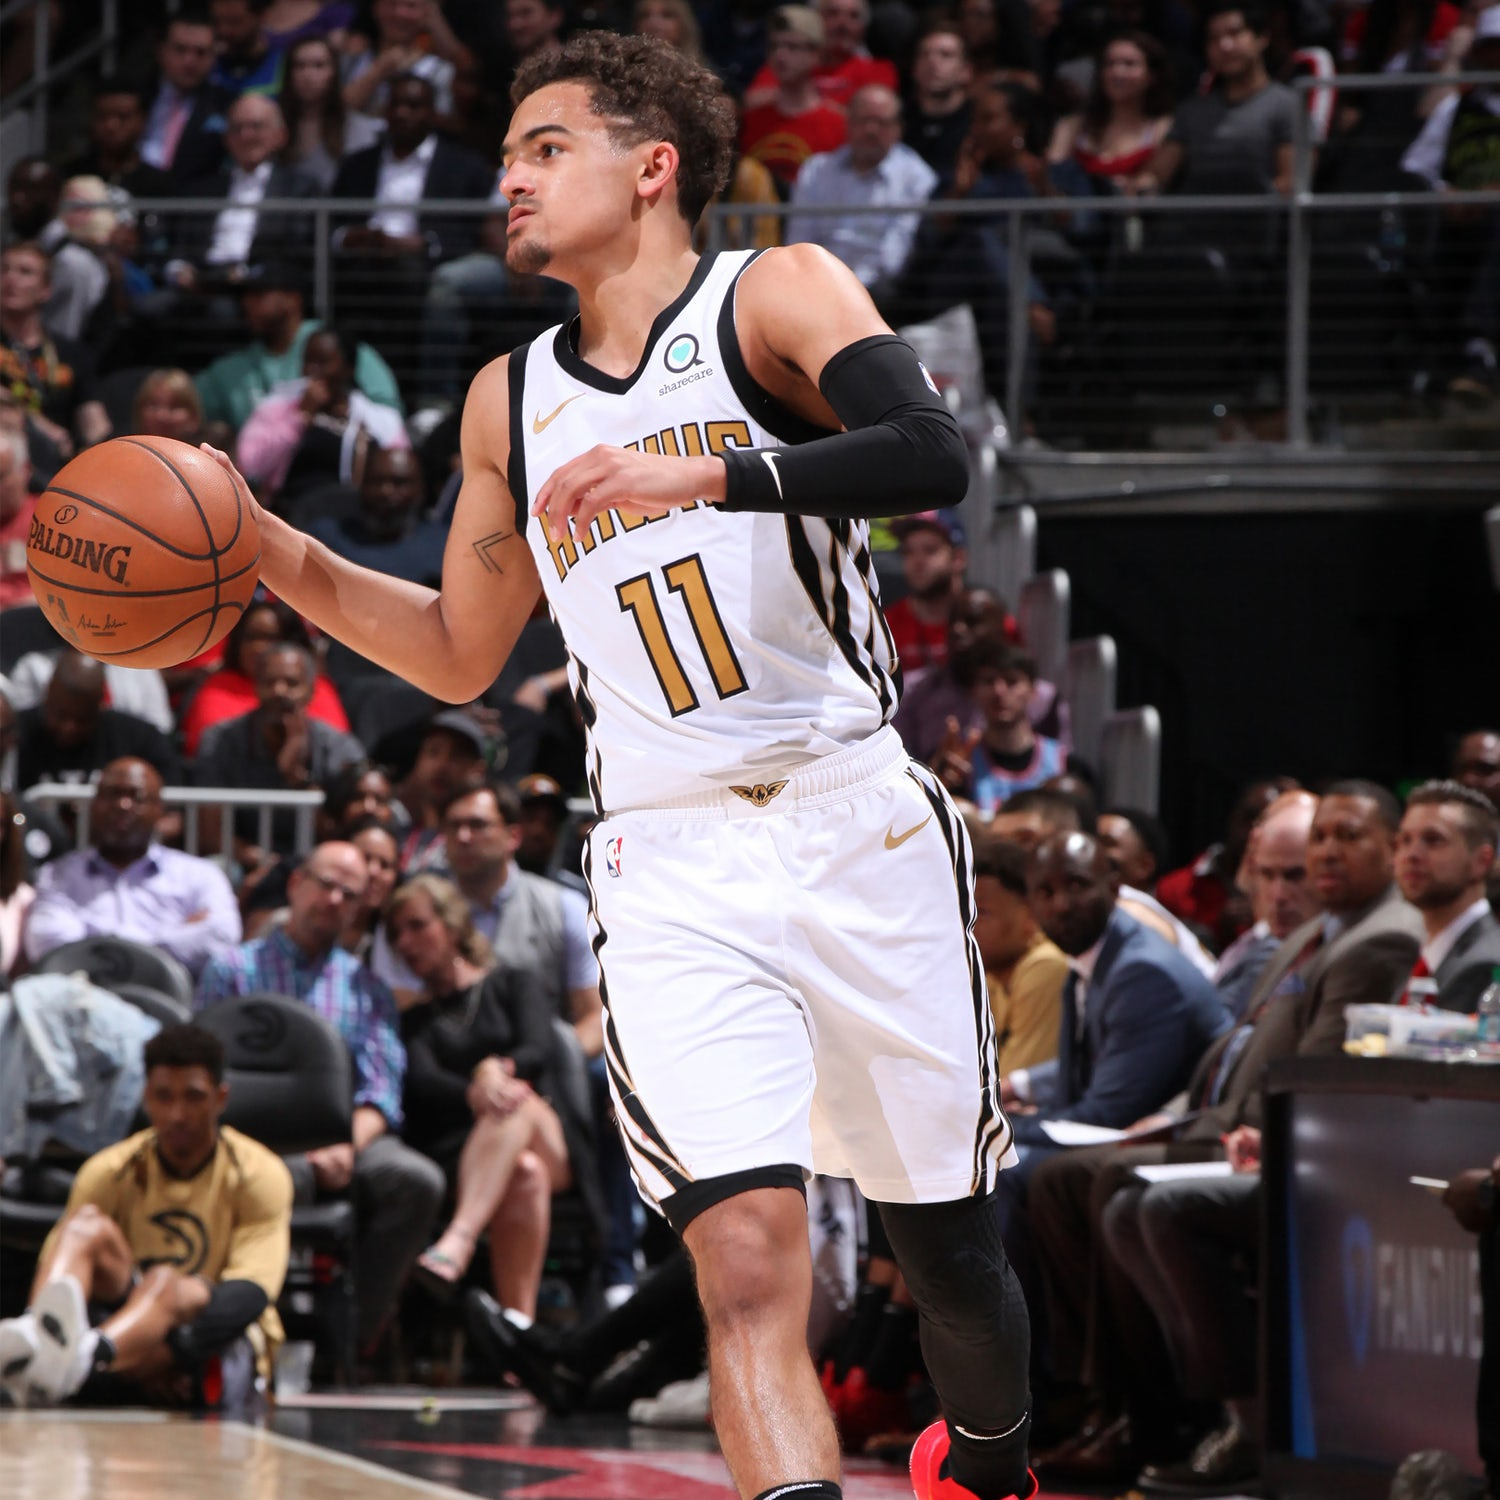 traeyoung instoryimage